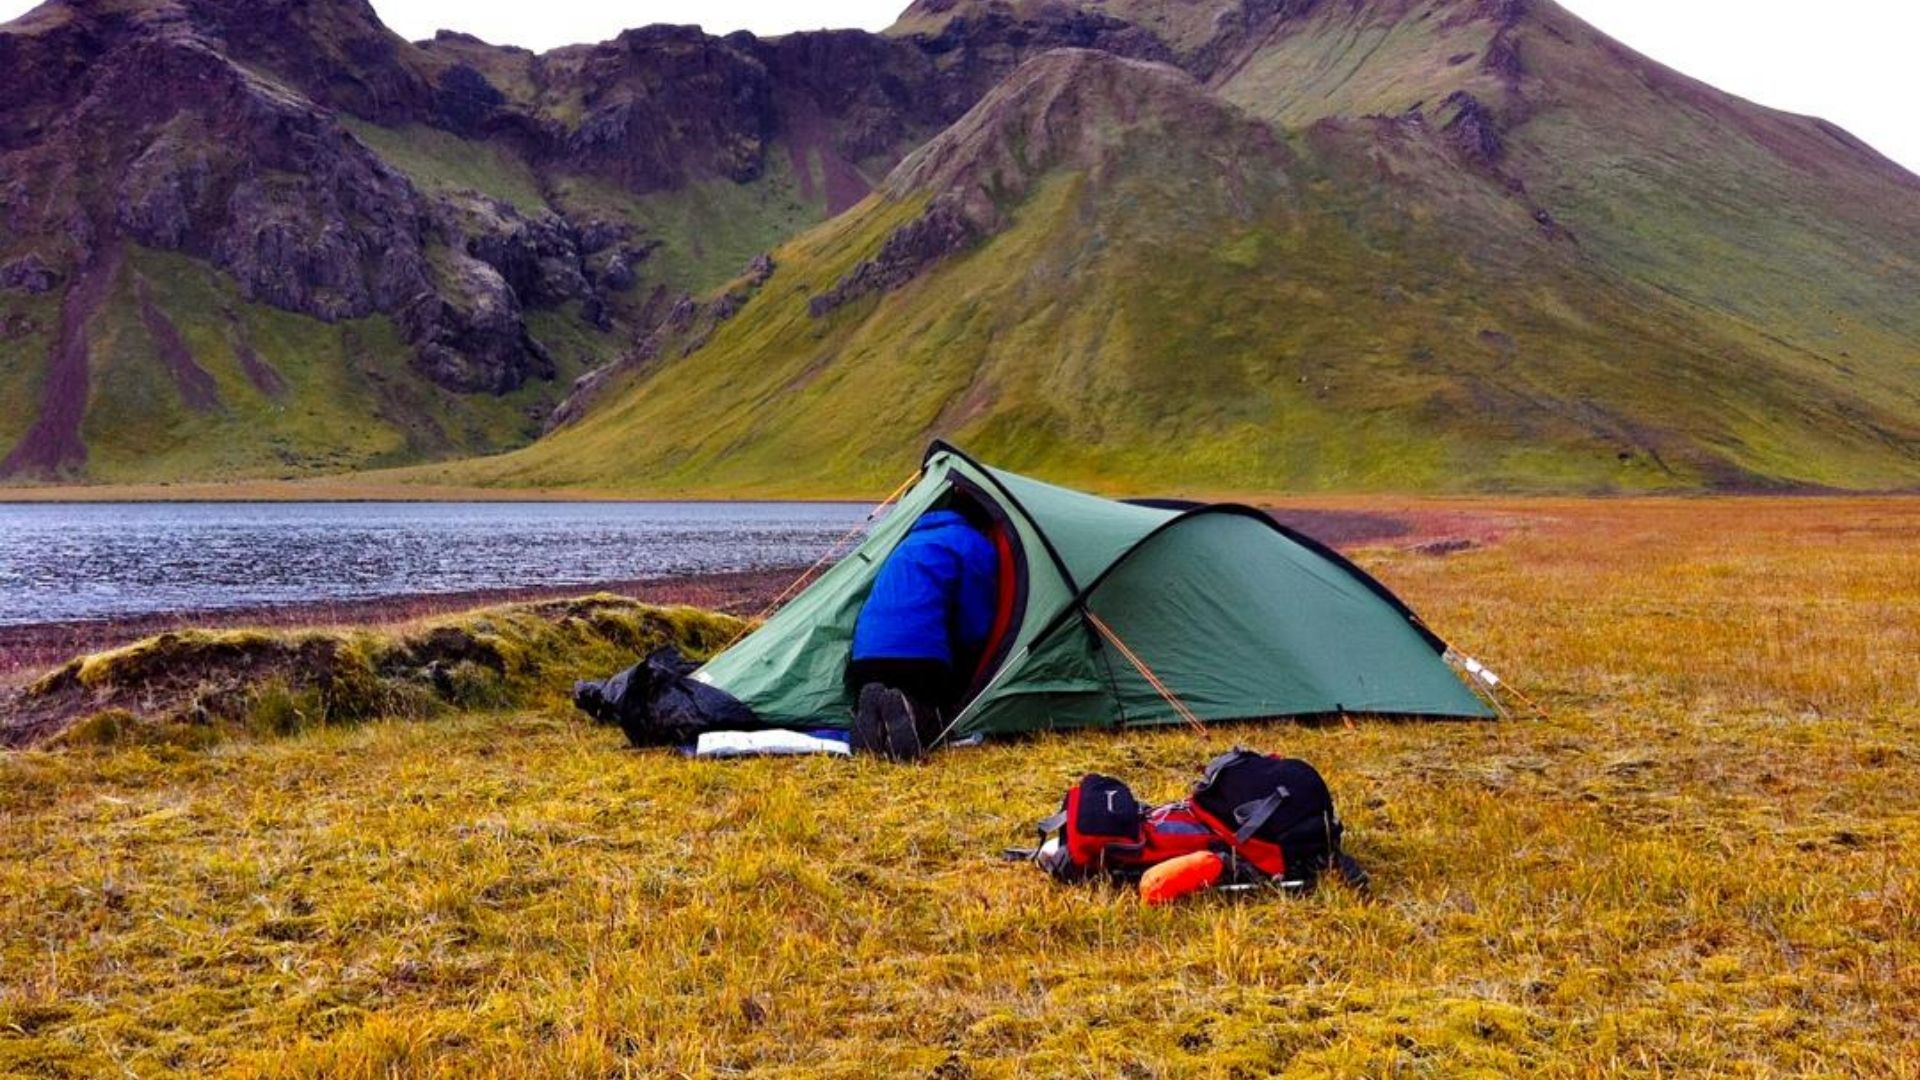 Hiking in Iceland: Backpacking trip from Reykjavik to Landmannalaugar